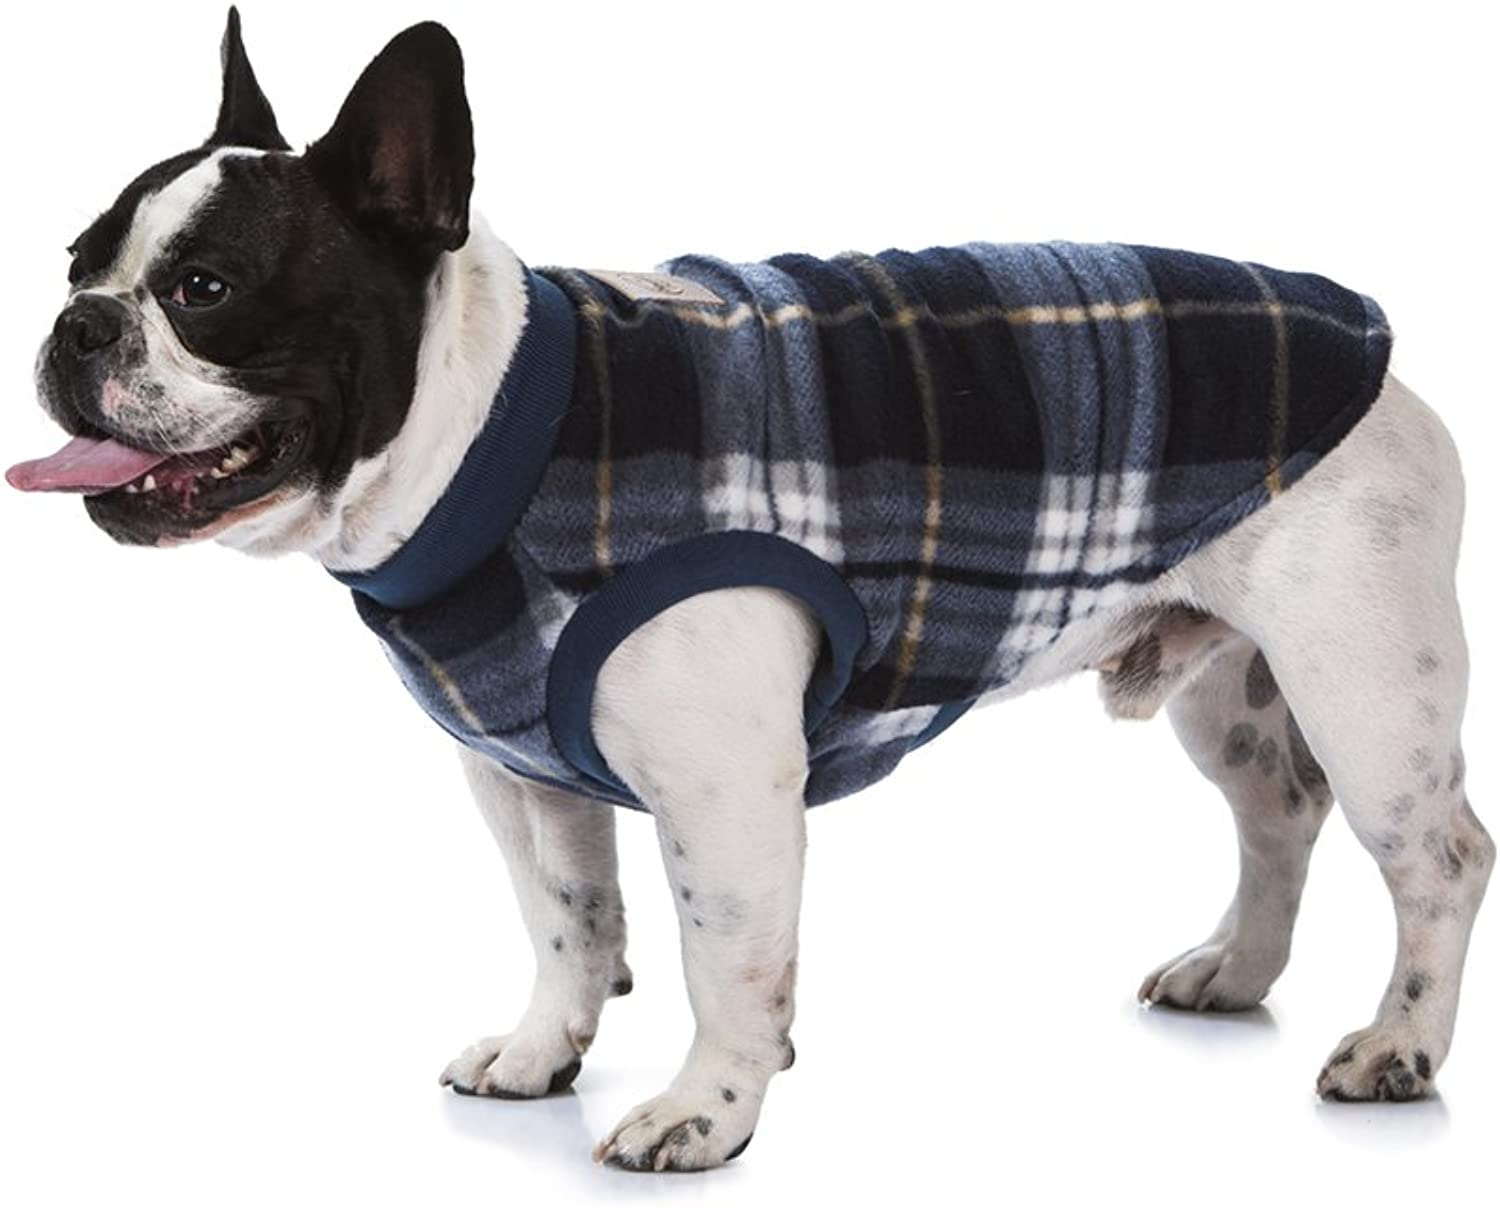 Abiti da cane, Blu di Tartan, Pet Apparel, Comfortable fit, No Fasteners, Super Soft Micro Fleece, Indoor e Outdoor wear